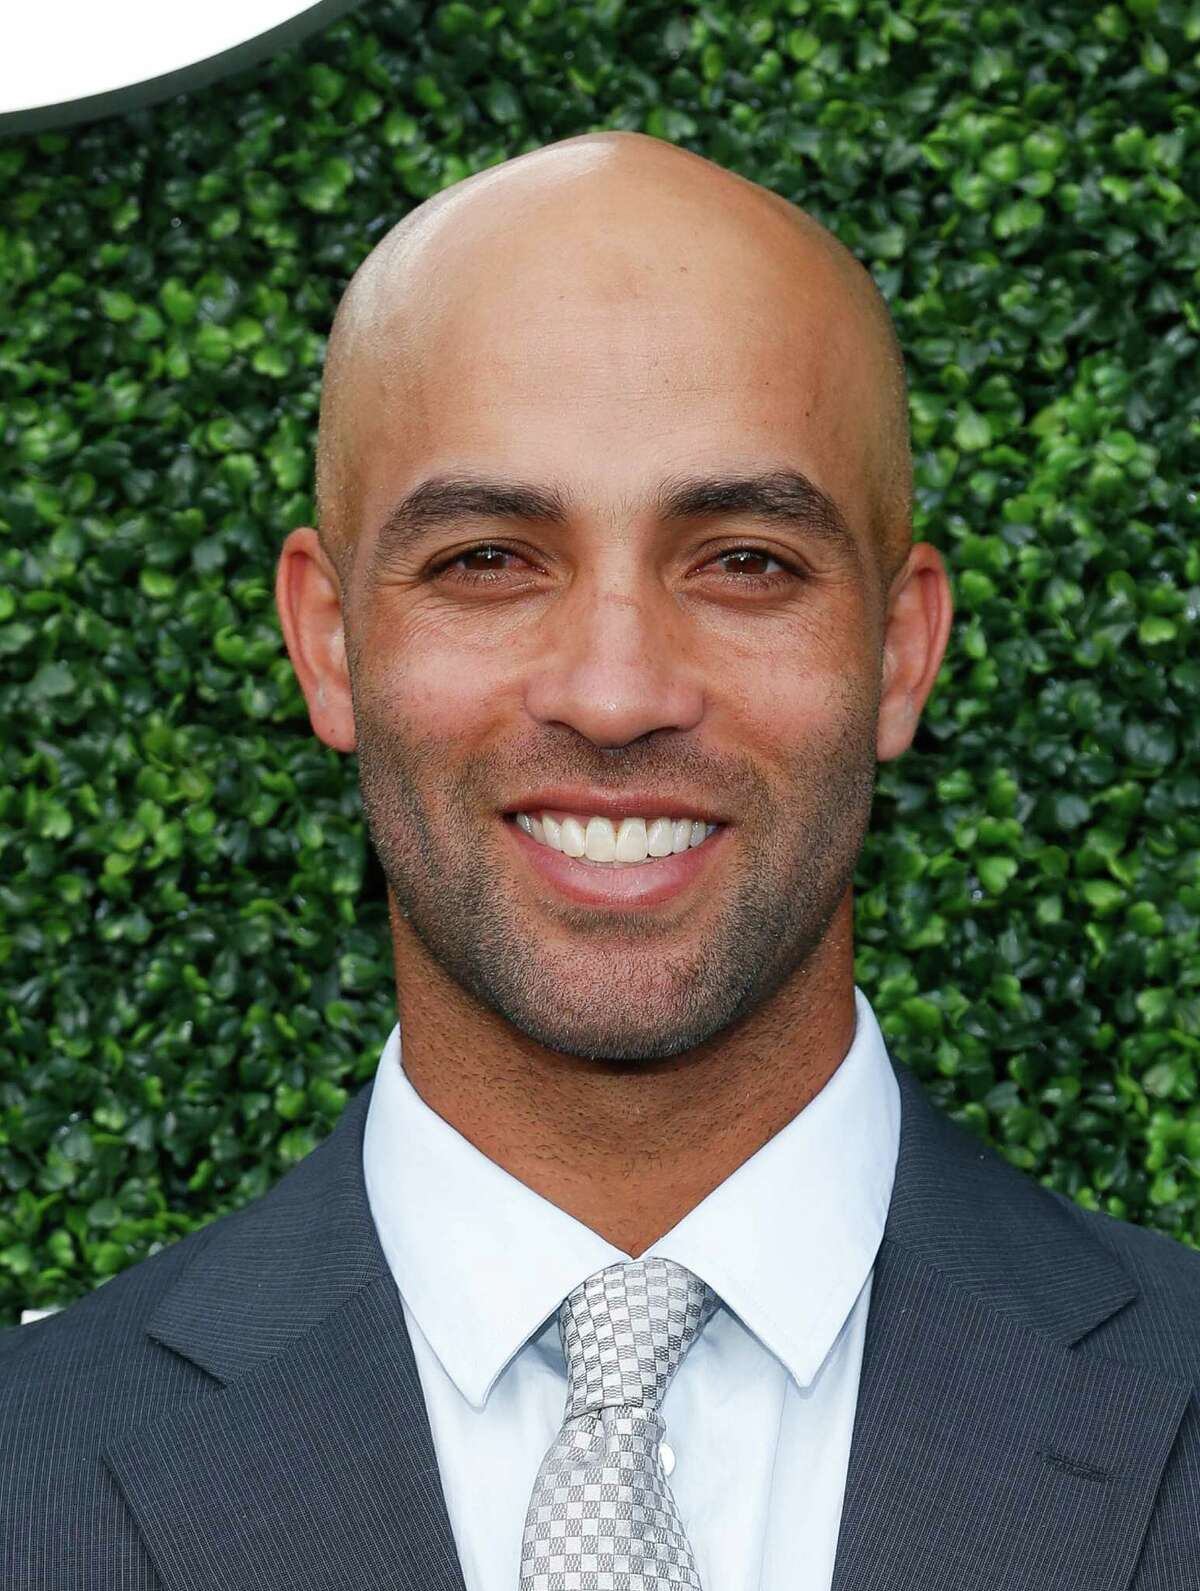 Tennis star James Blake was body slammed and cuffed outside a midtown hotel by a New York police officer who mistook him for a suspect.